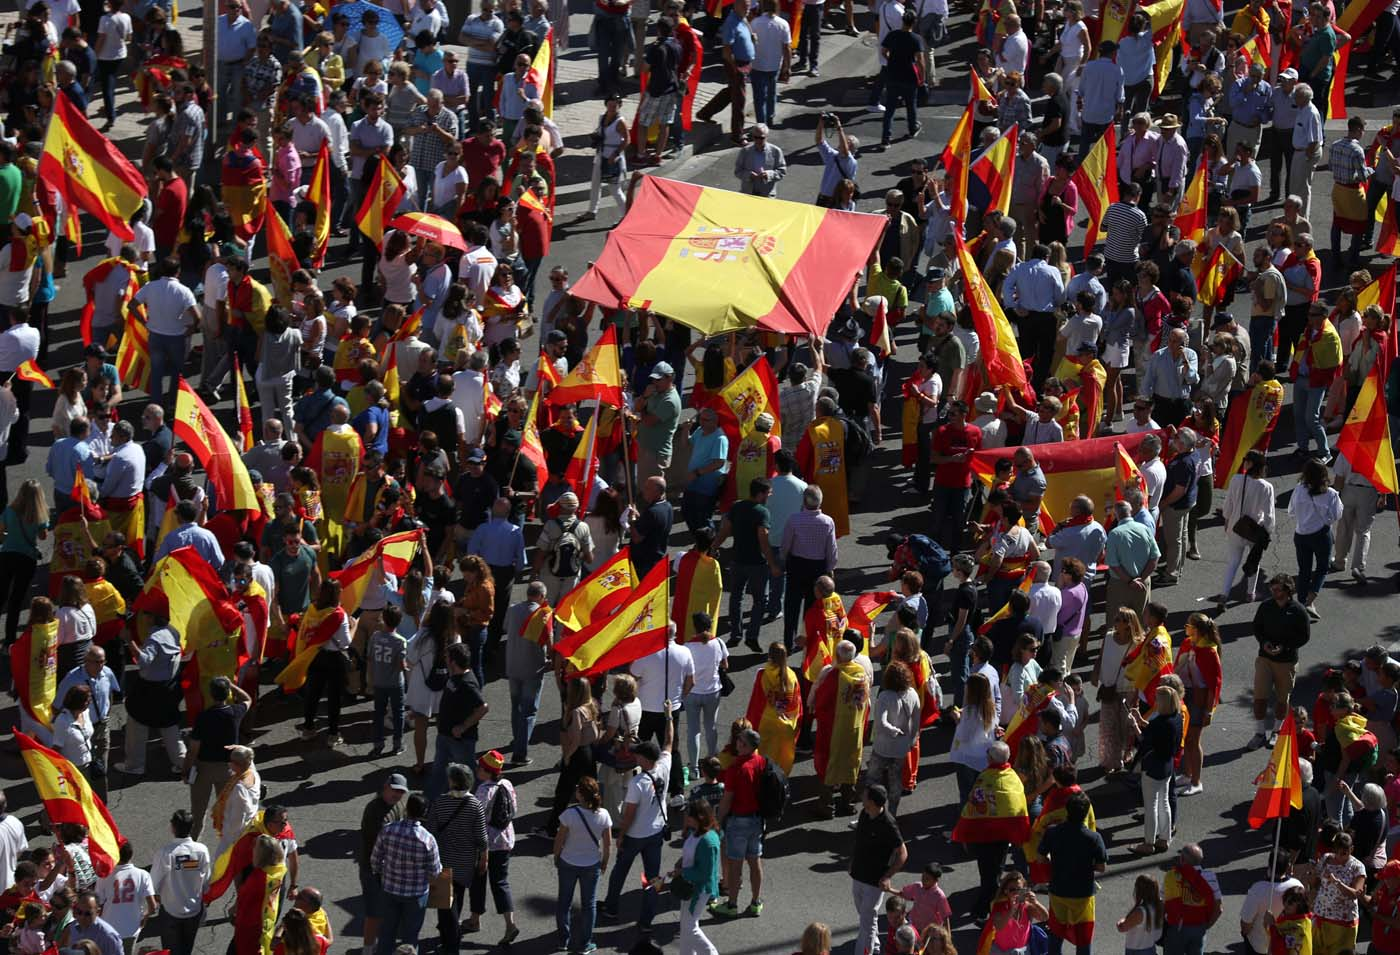 People take part in a pro-union demonstration in Madrid, Spain, October 7, 2017. REUTERS/Sergio Perez